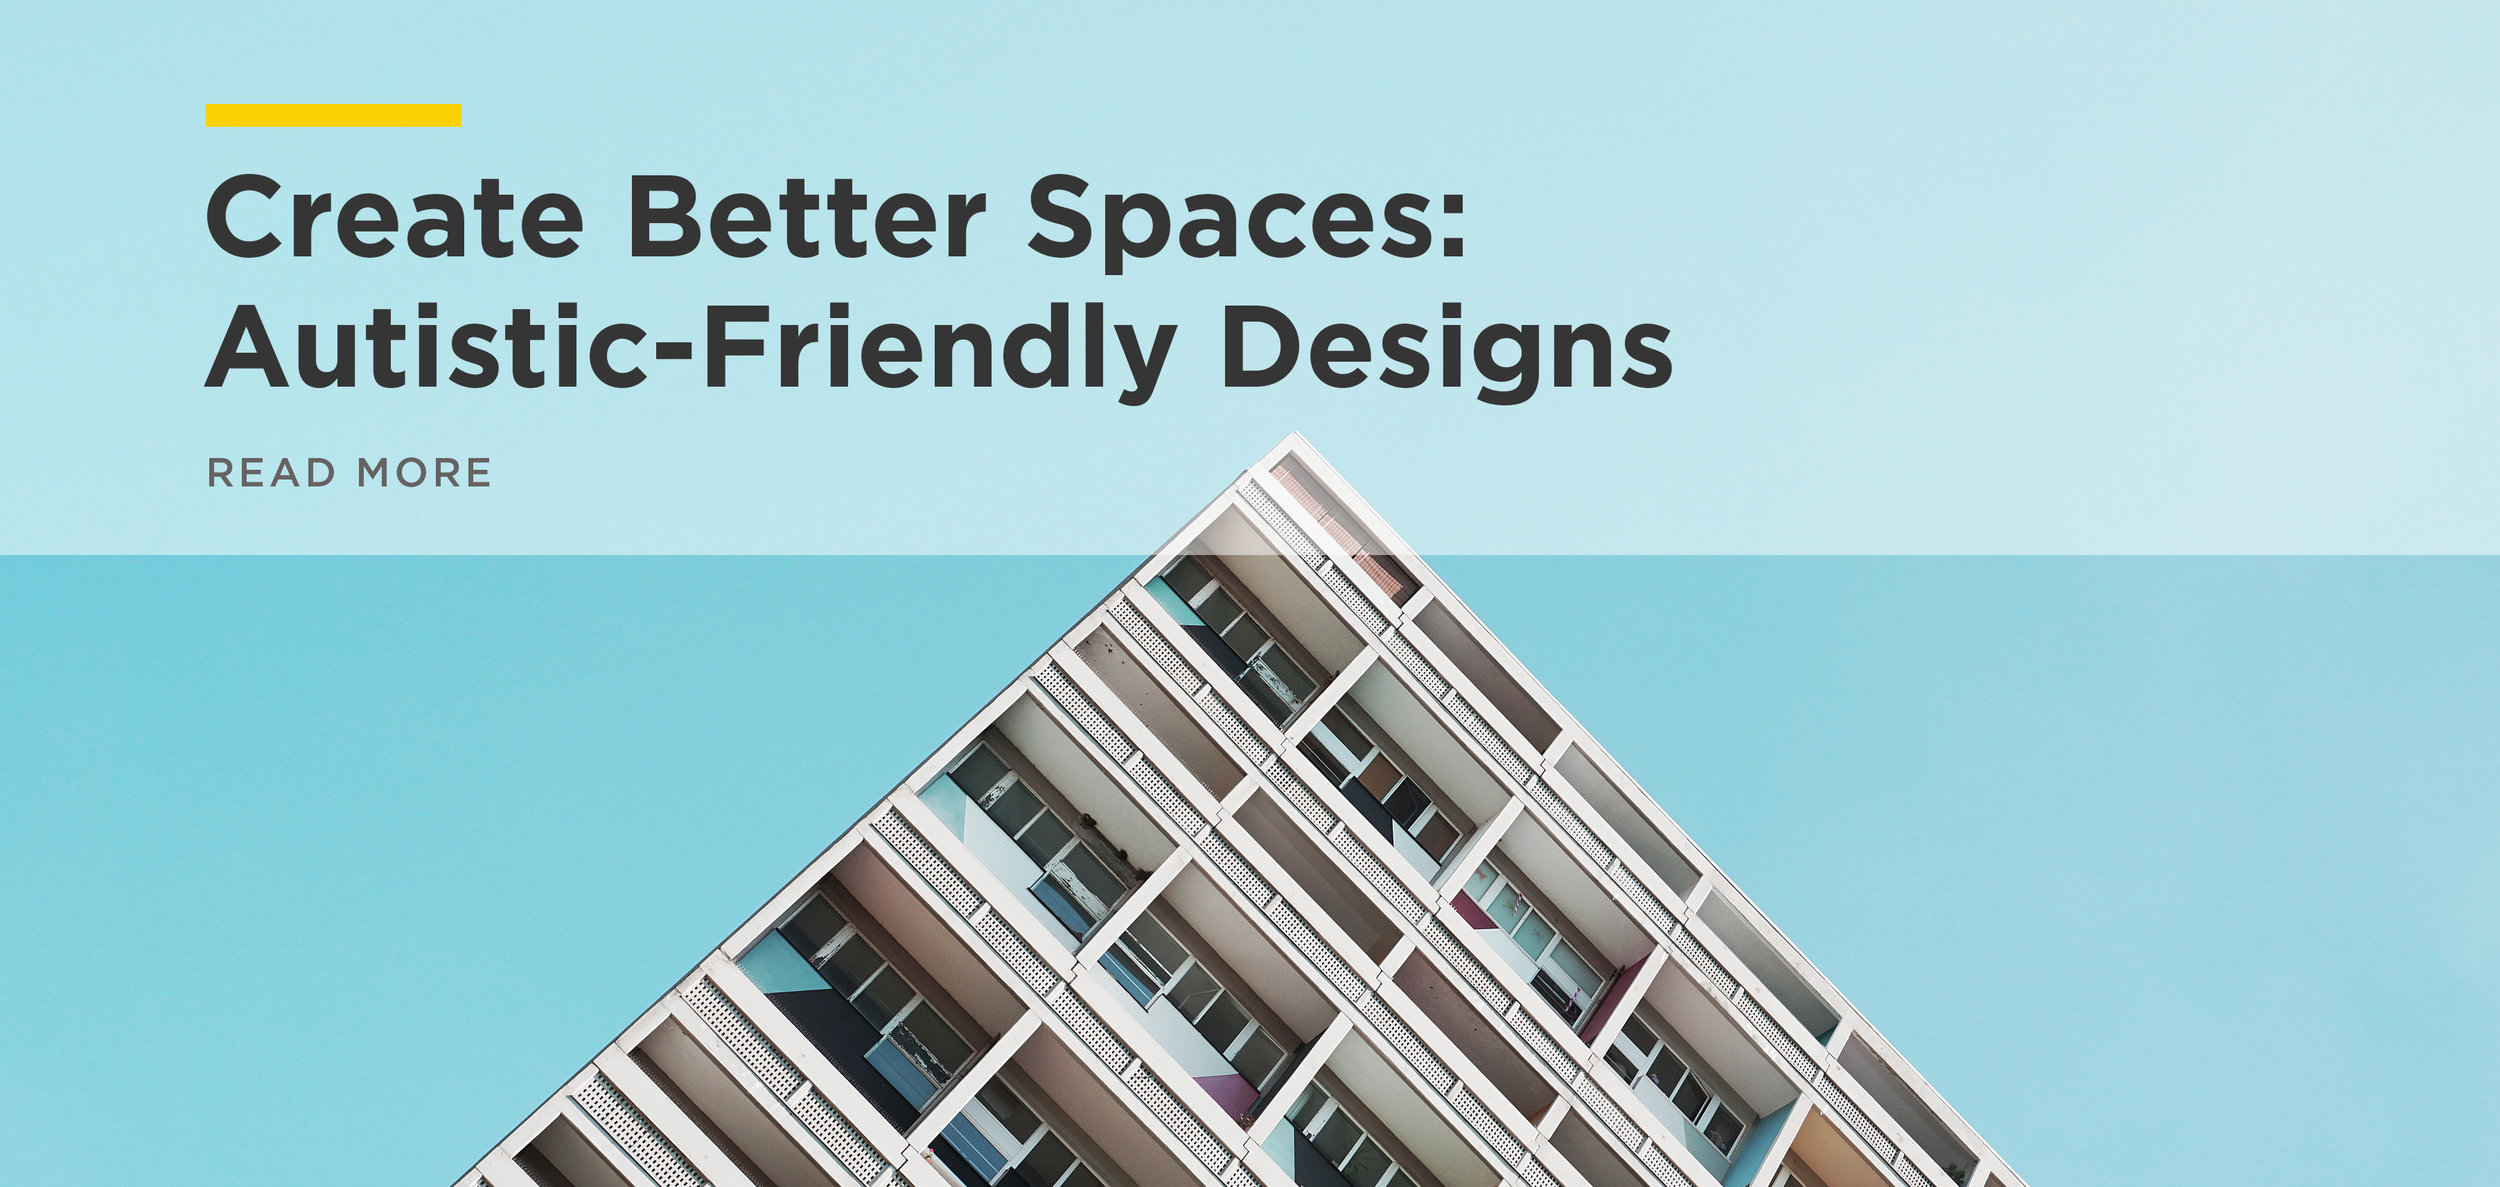 How To Design Spaces For People With >> Design Architecture Consulting Create Better Spaces Autistic